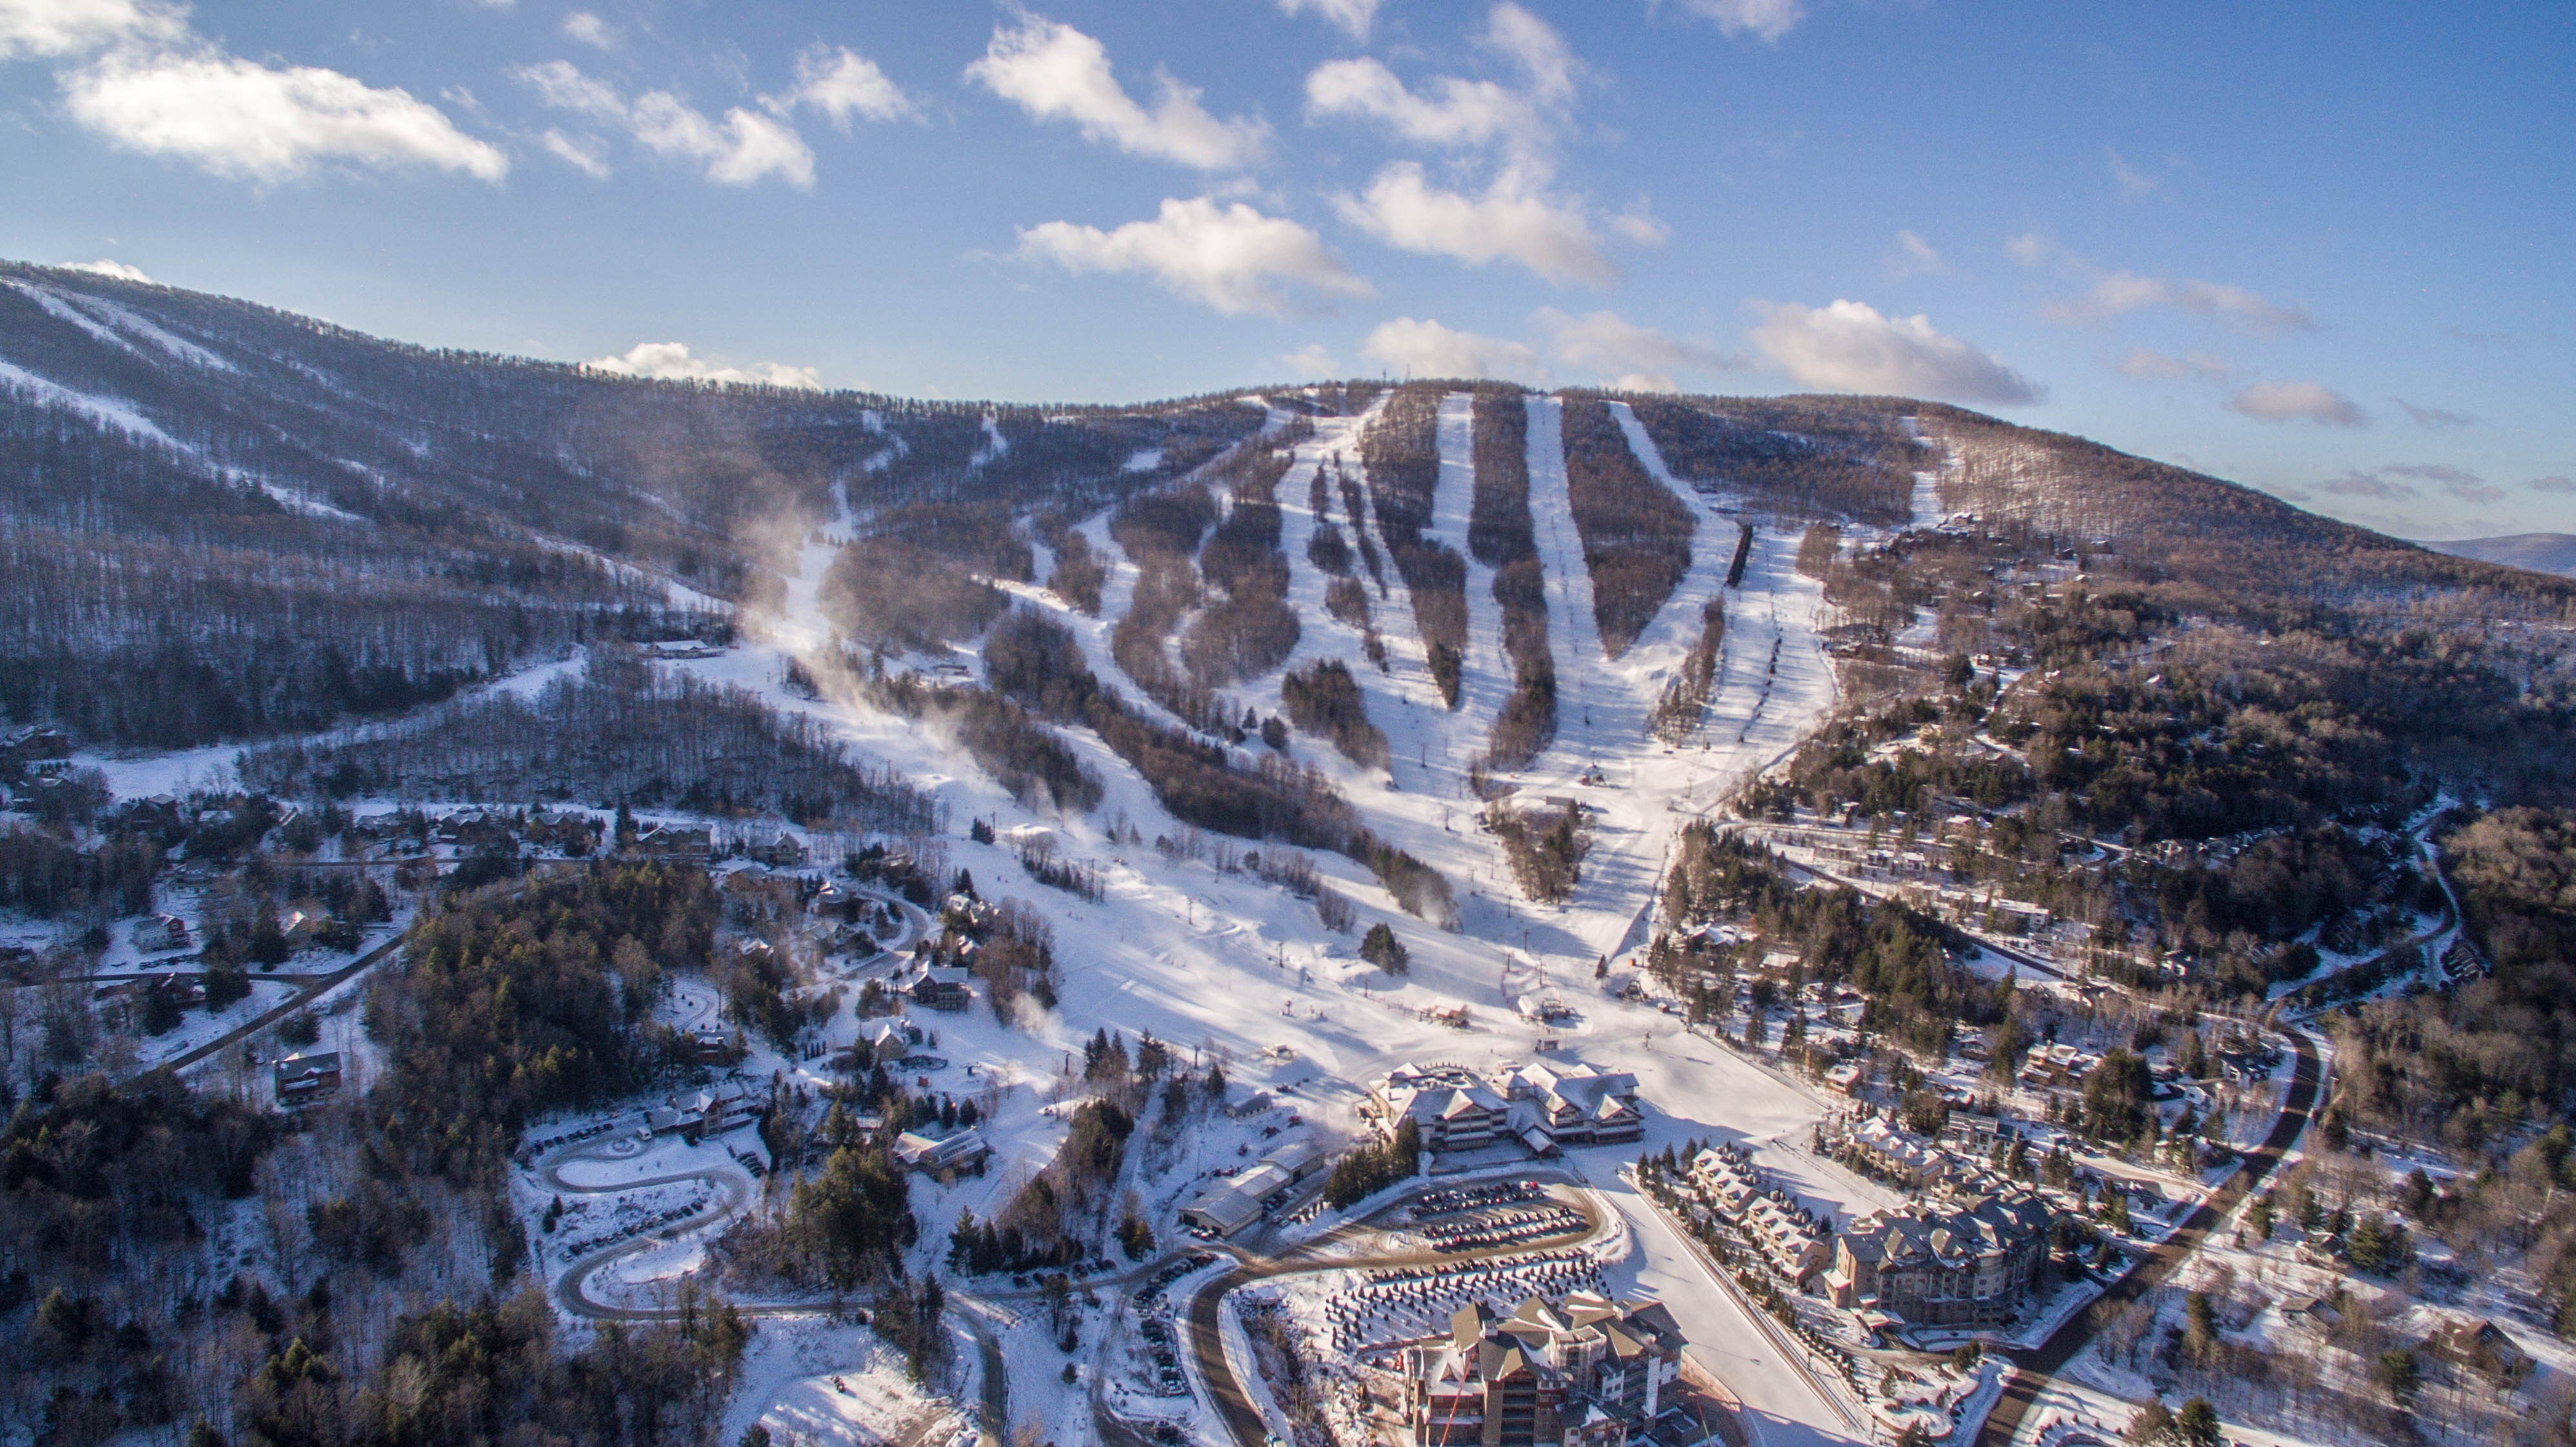 windham mountain resort: new & improved | ((sponsored)) | outdoors